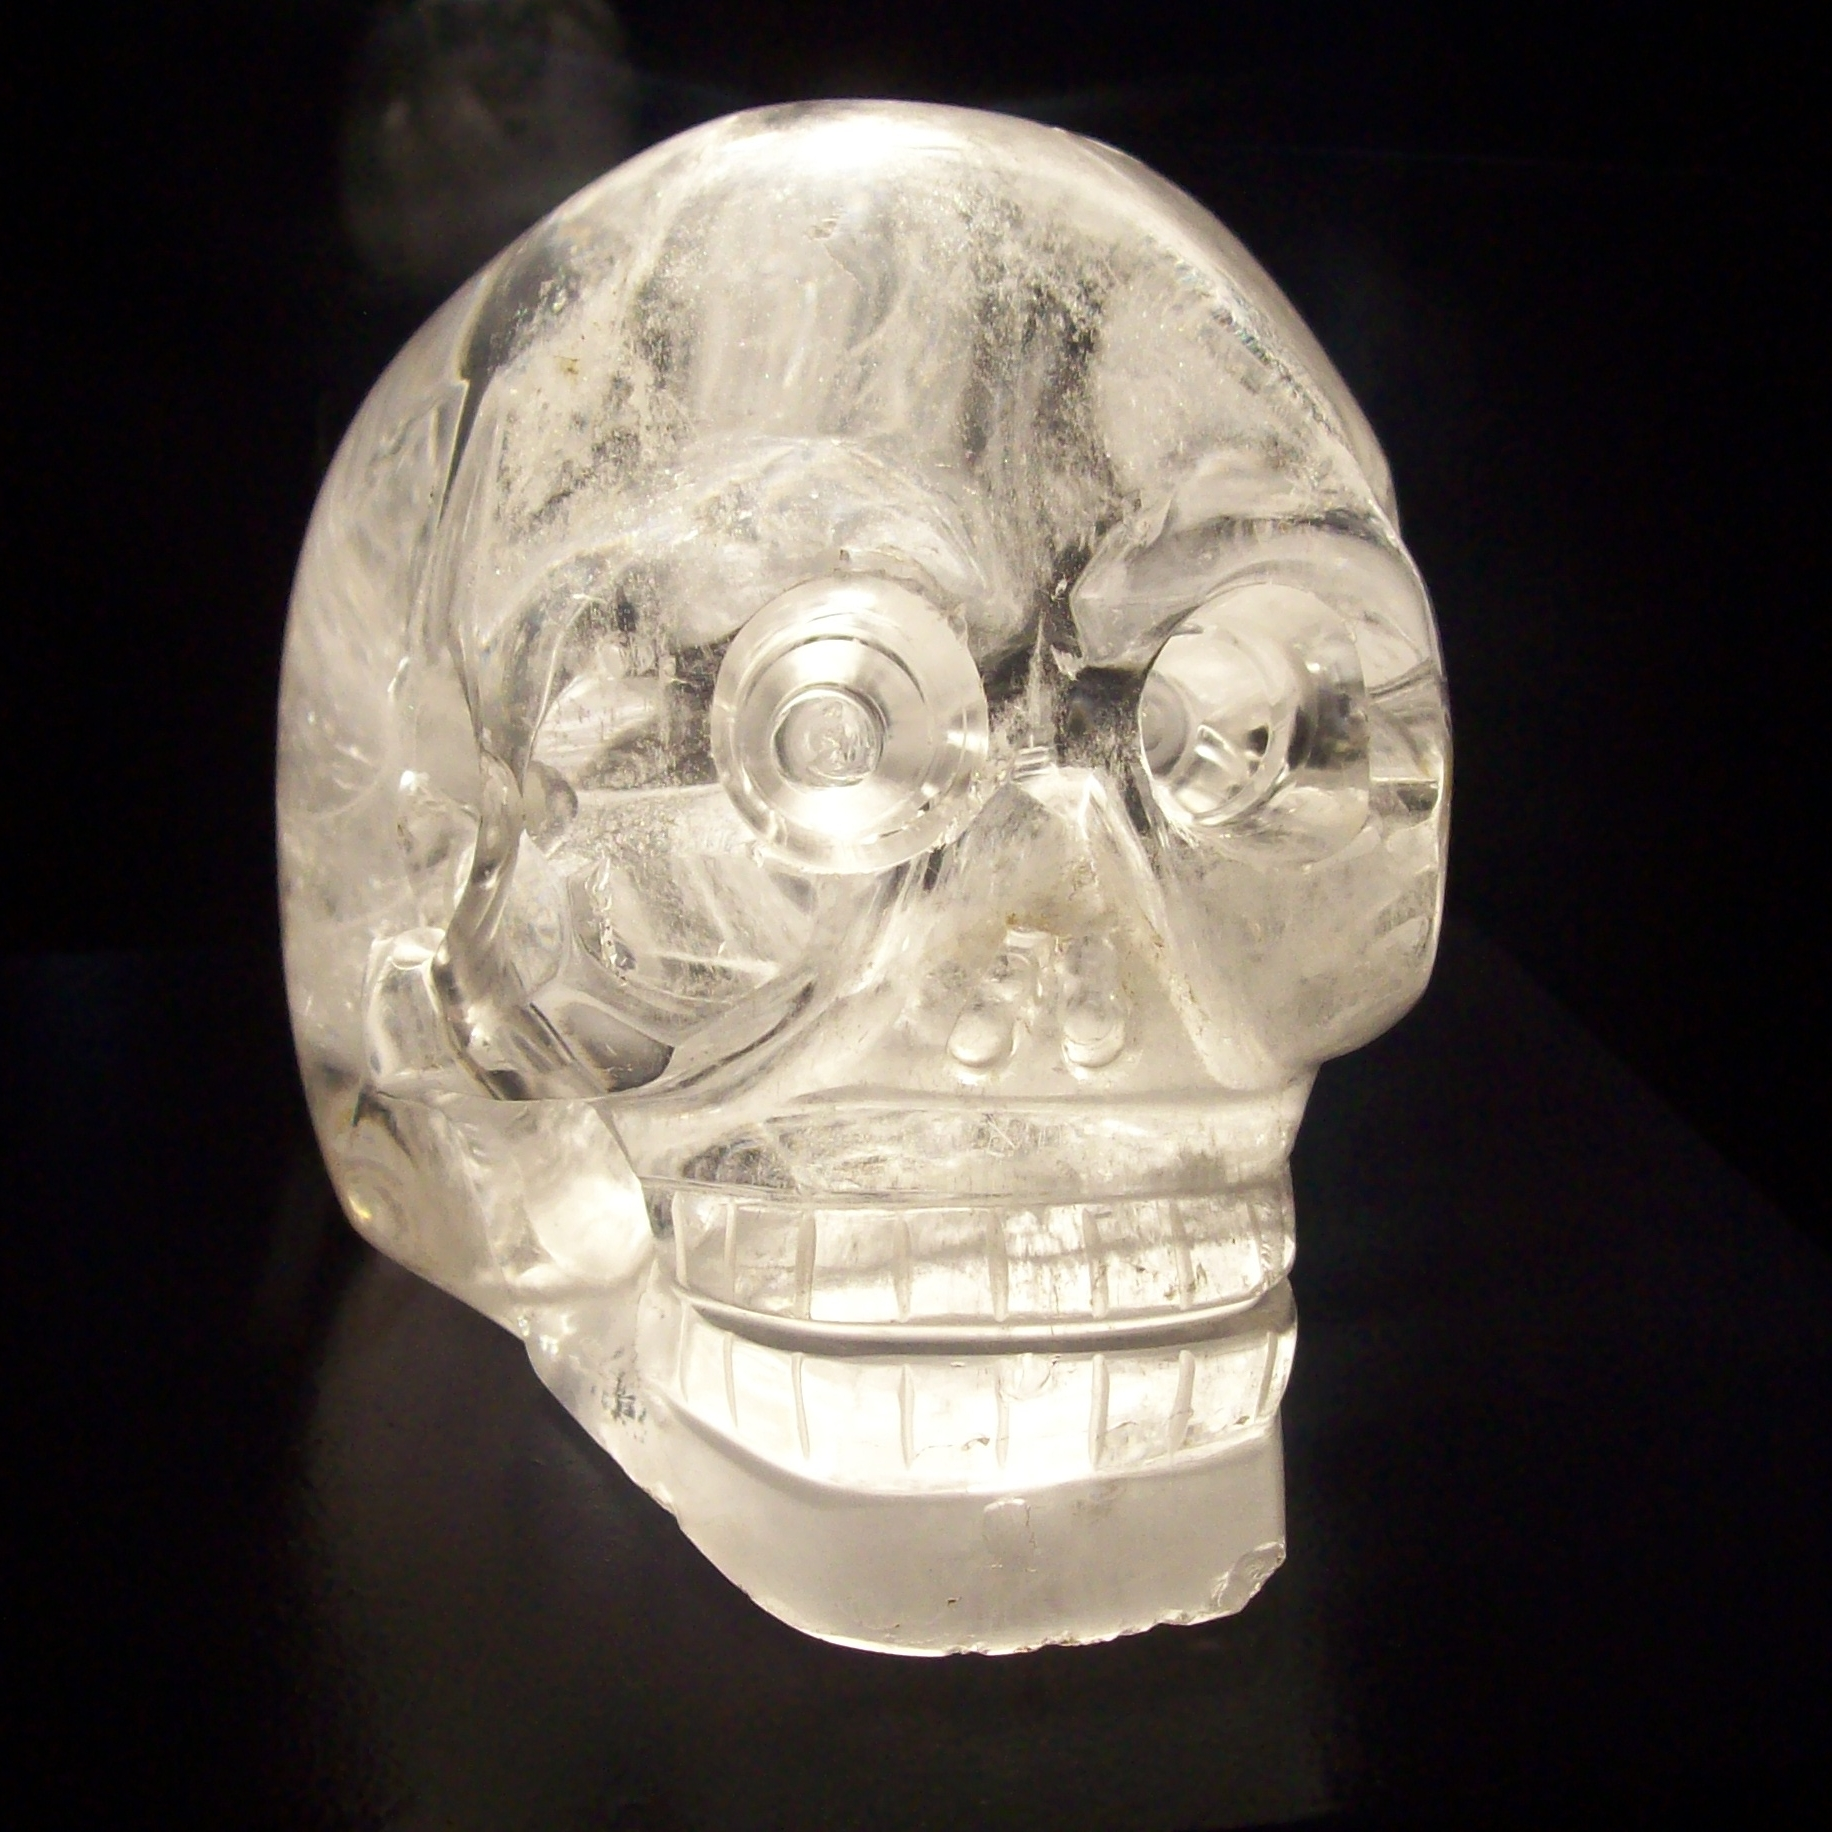 Crystal Skull Jones Crystal Skull at The Musée du